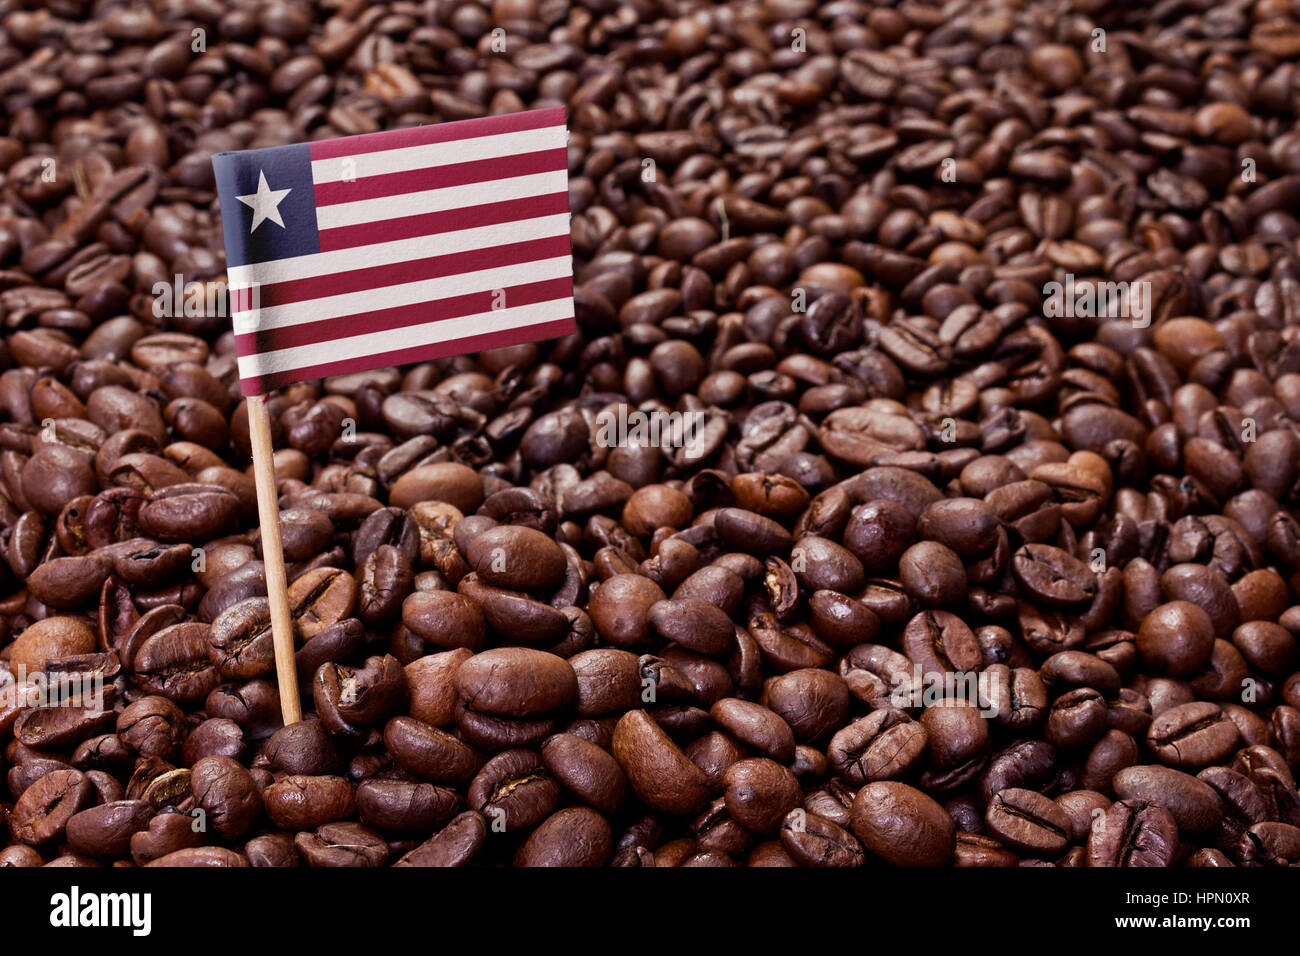 Flag of Liberia sticking in roasted coffee beans.(series) - Stock Image